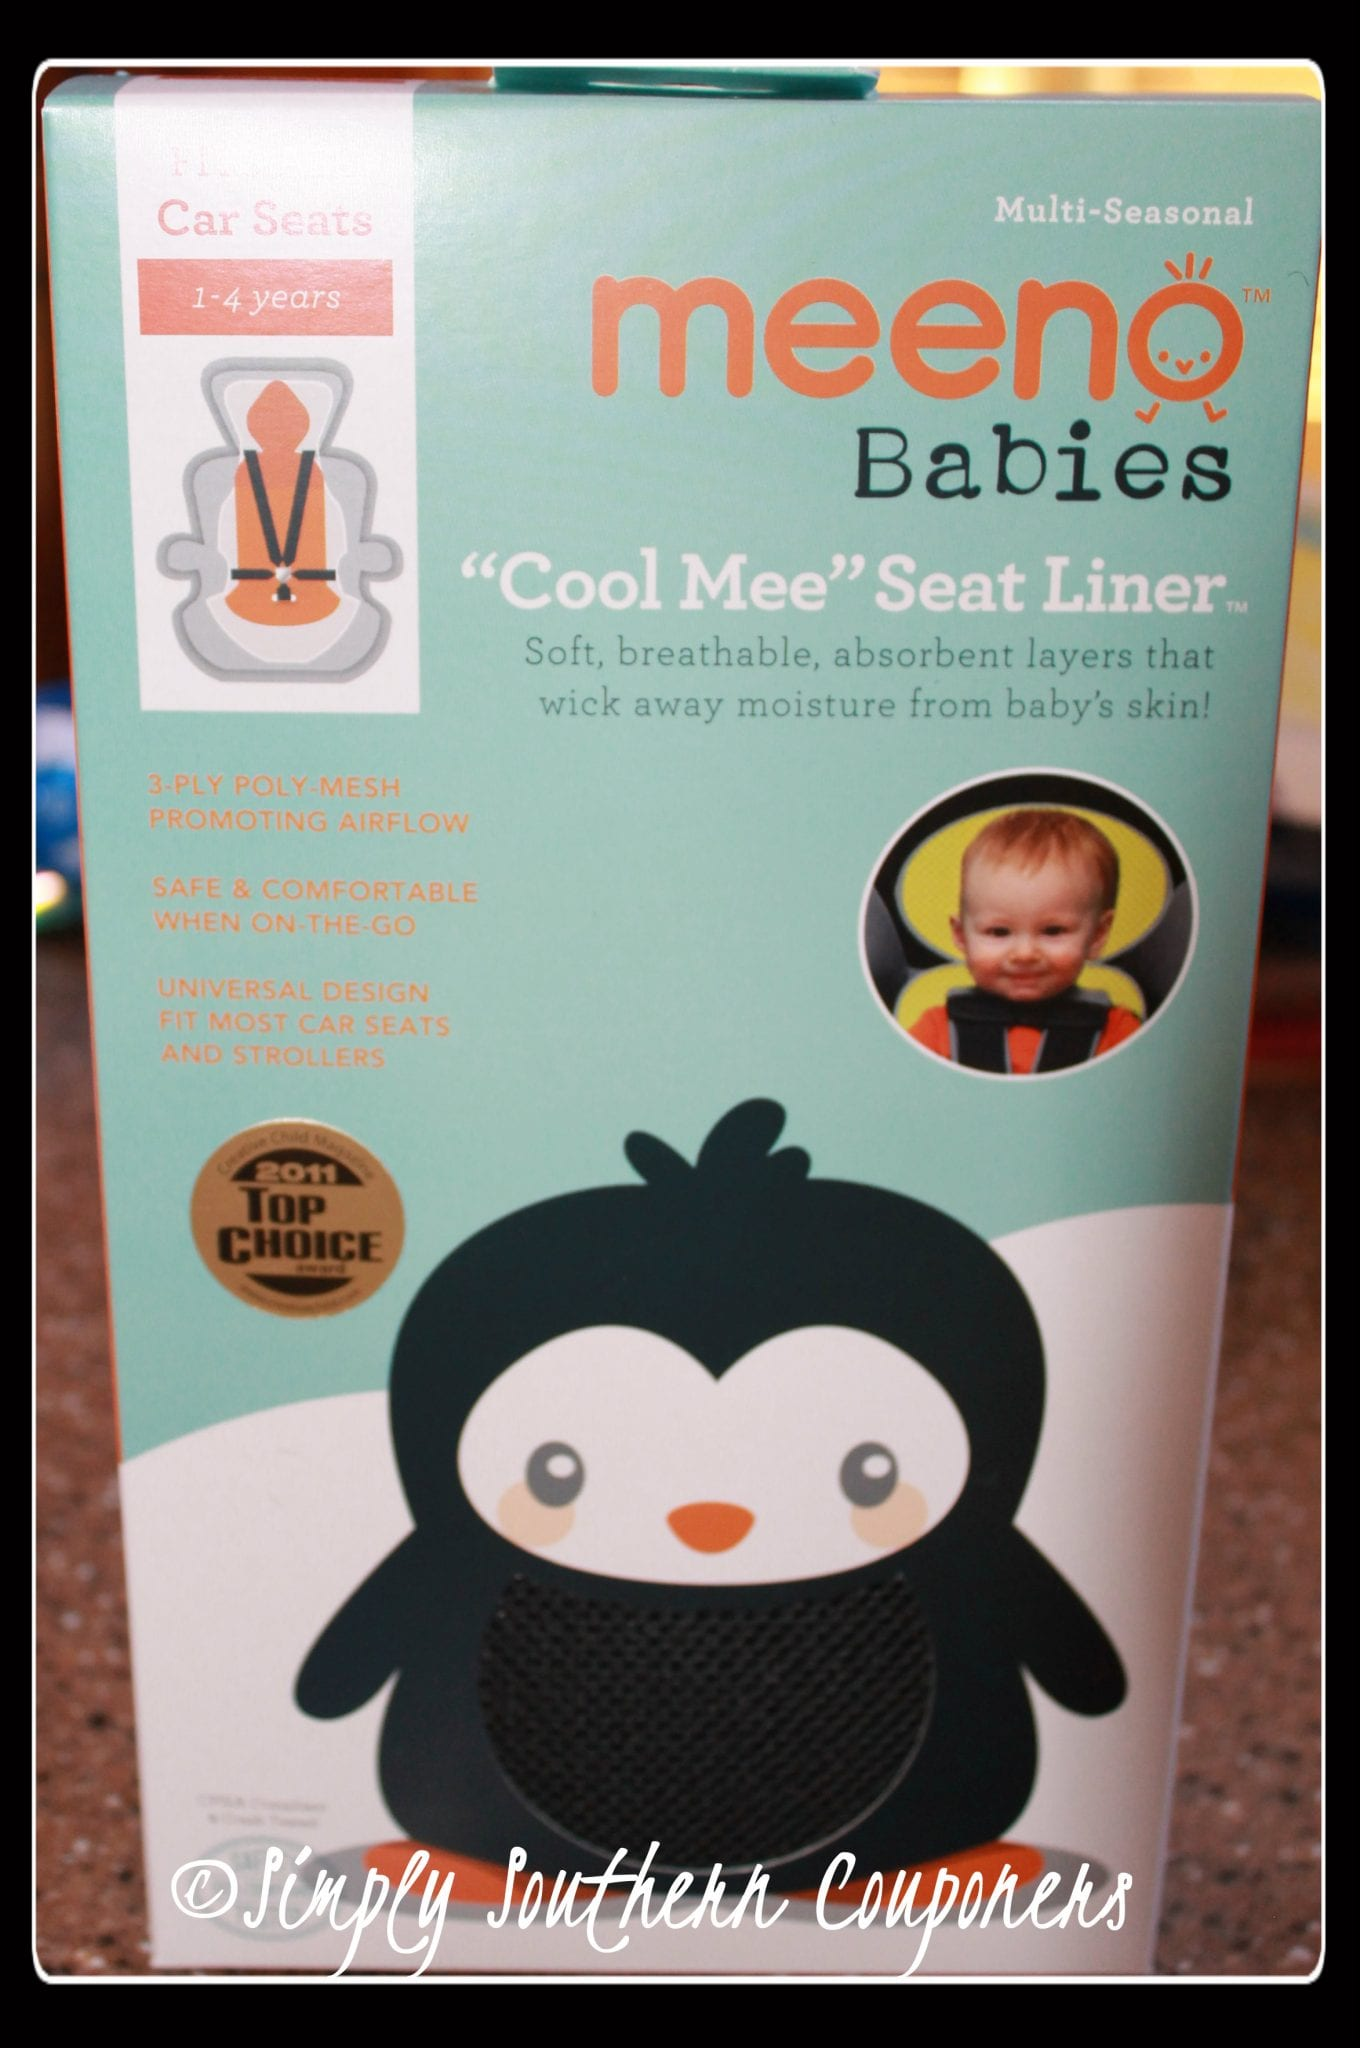 Meeno Babies Quot Cool Mee Seat Liner Quot Review Southern